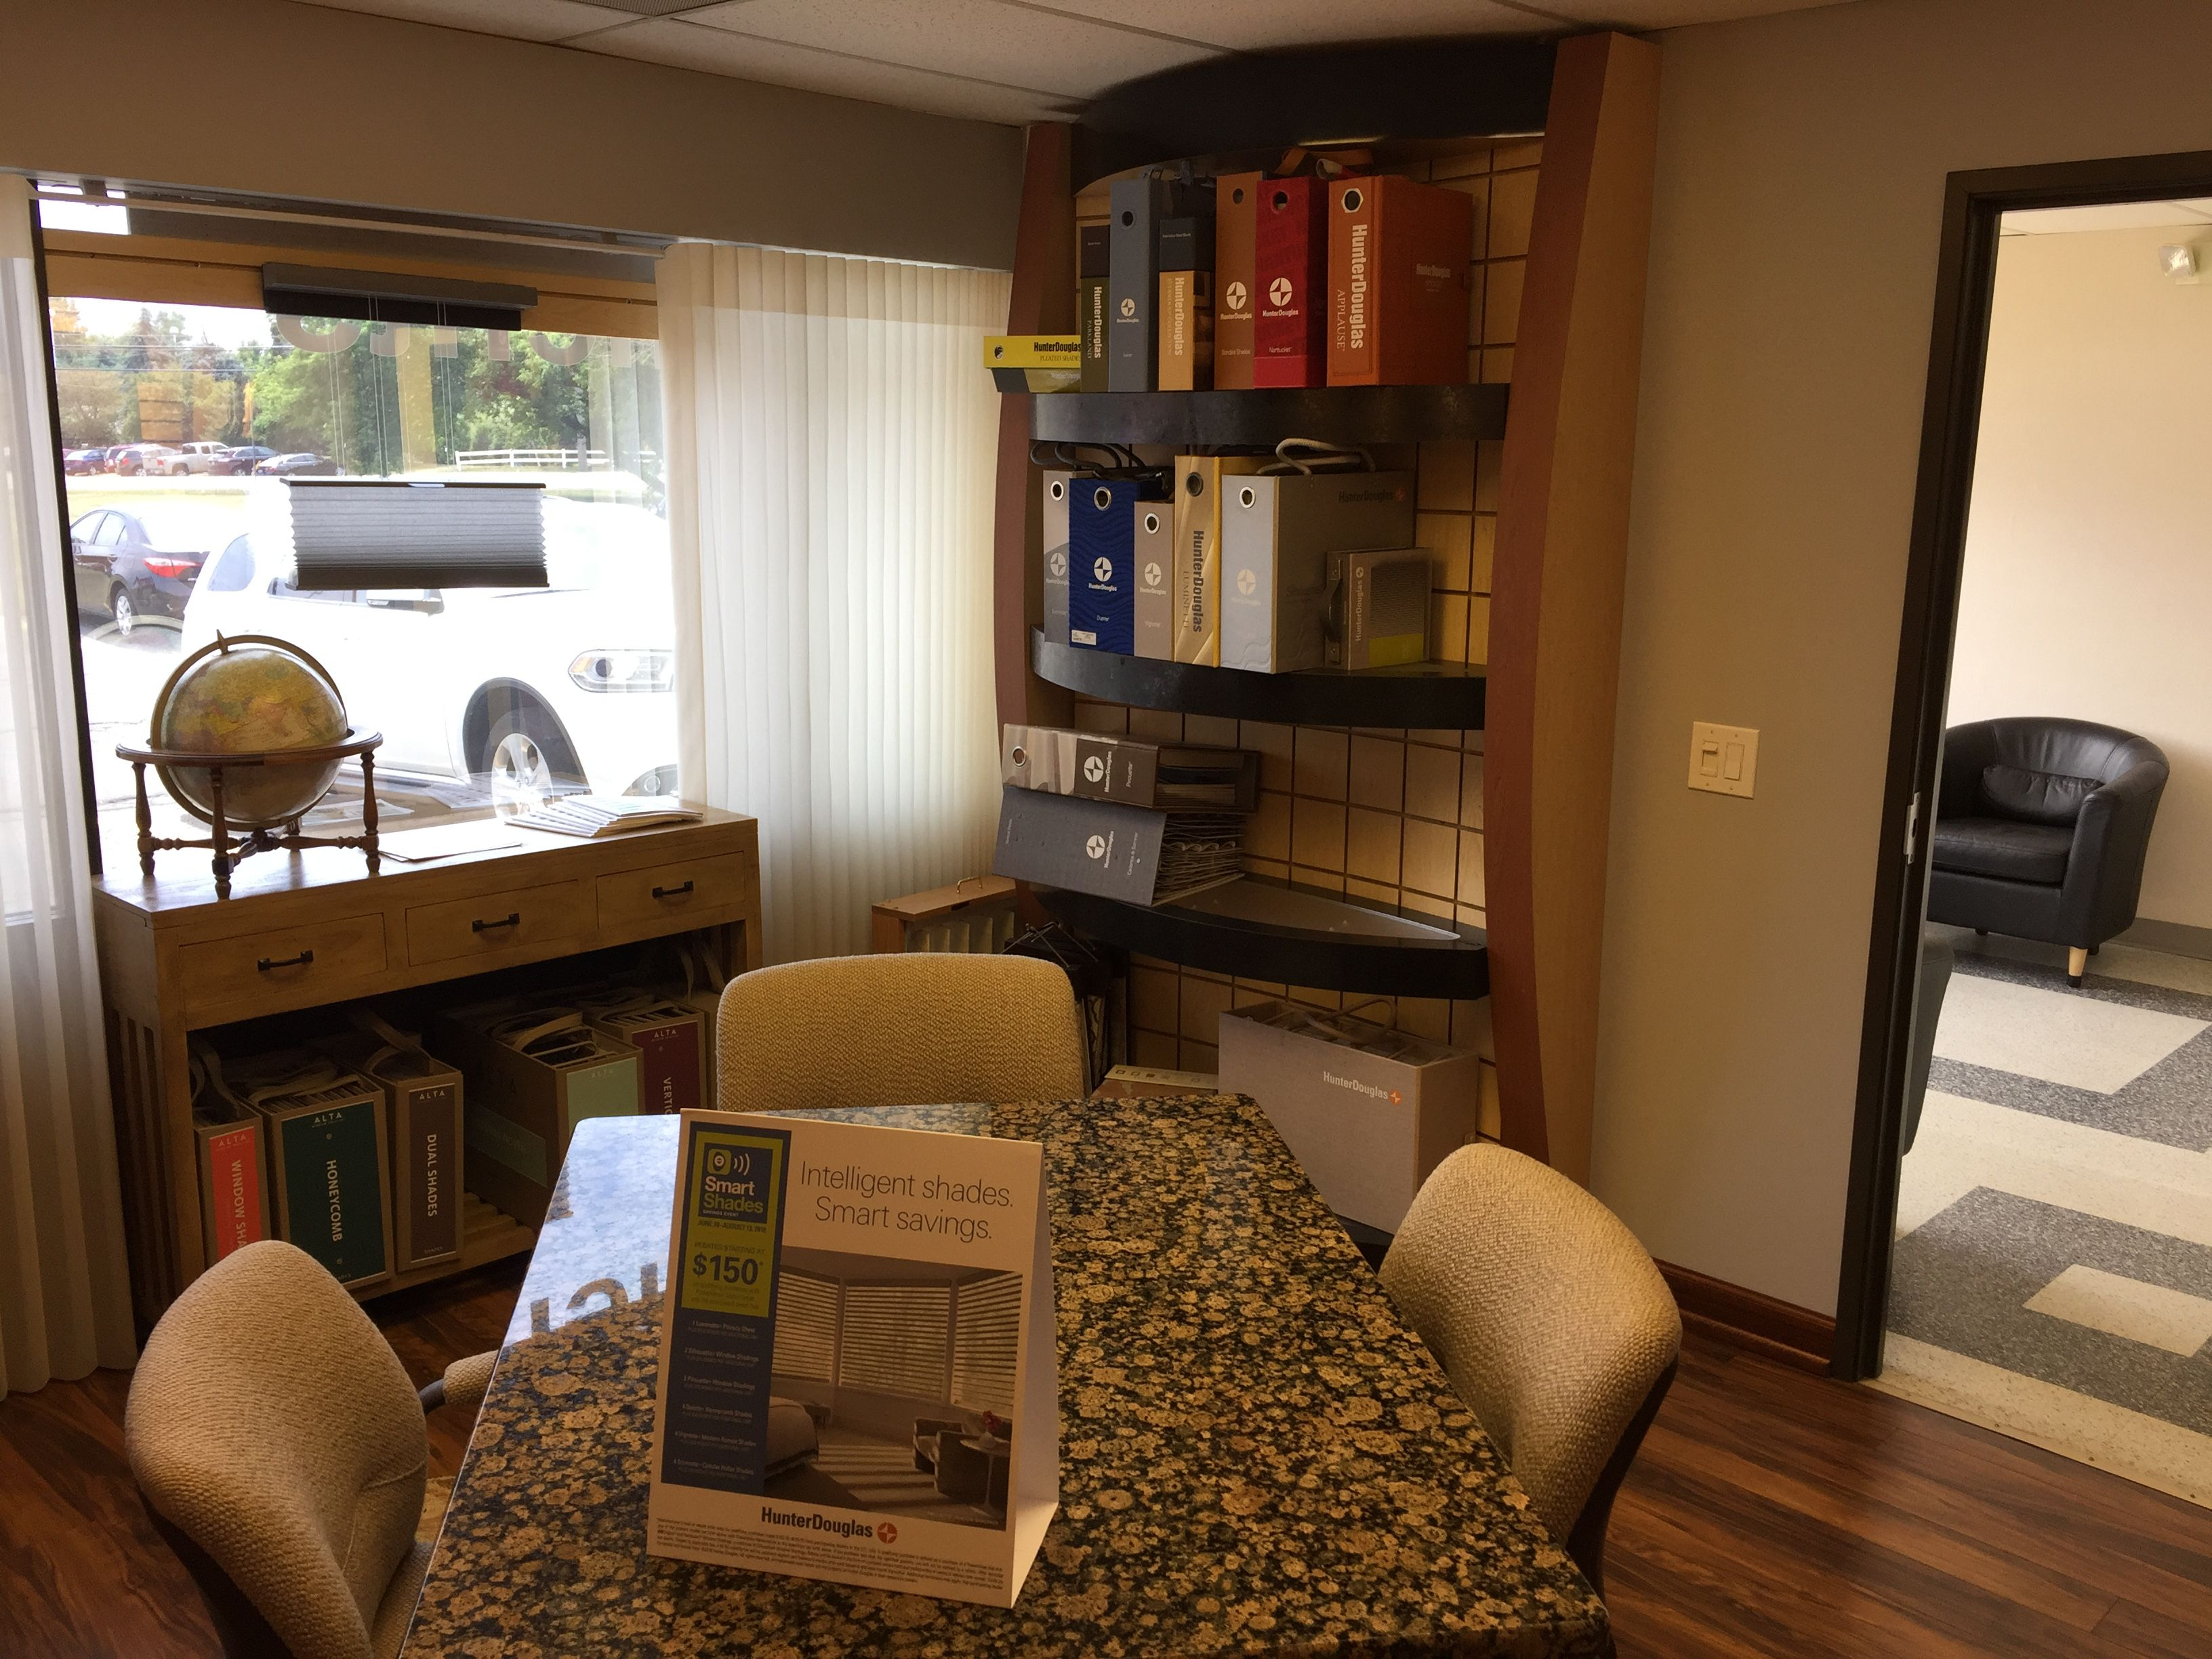 Check Out All The New Products In Our Beautiful Newly Renovated Showroom!  Free In Home Design Consultation. Call 800.470.9059 #windowtreatments ...